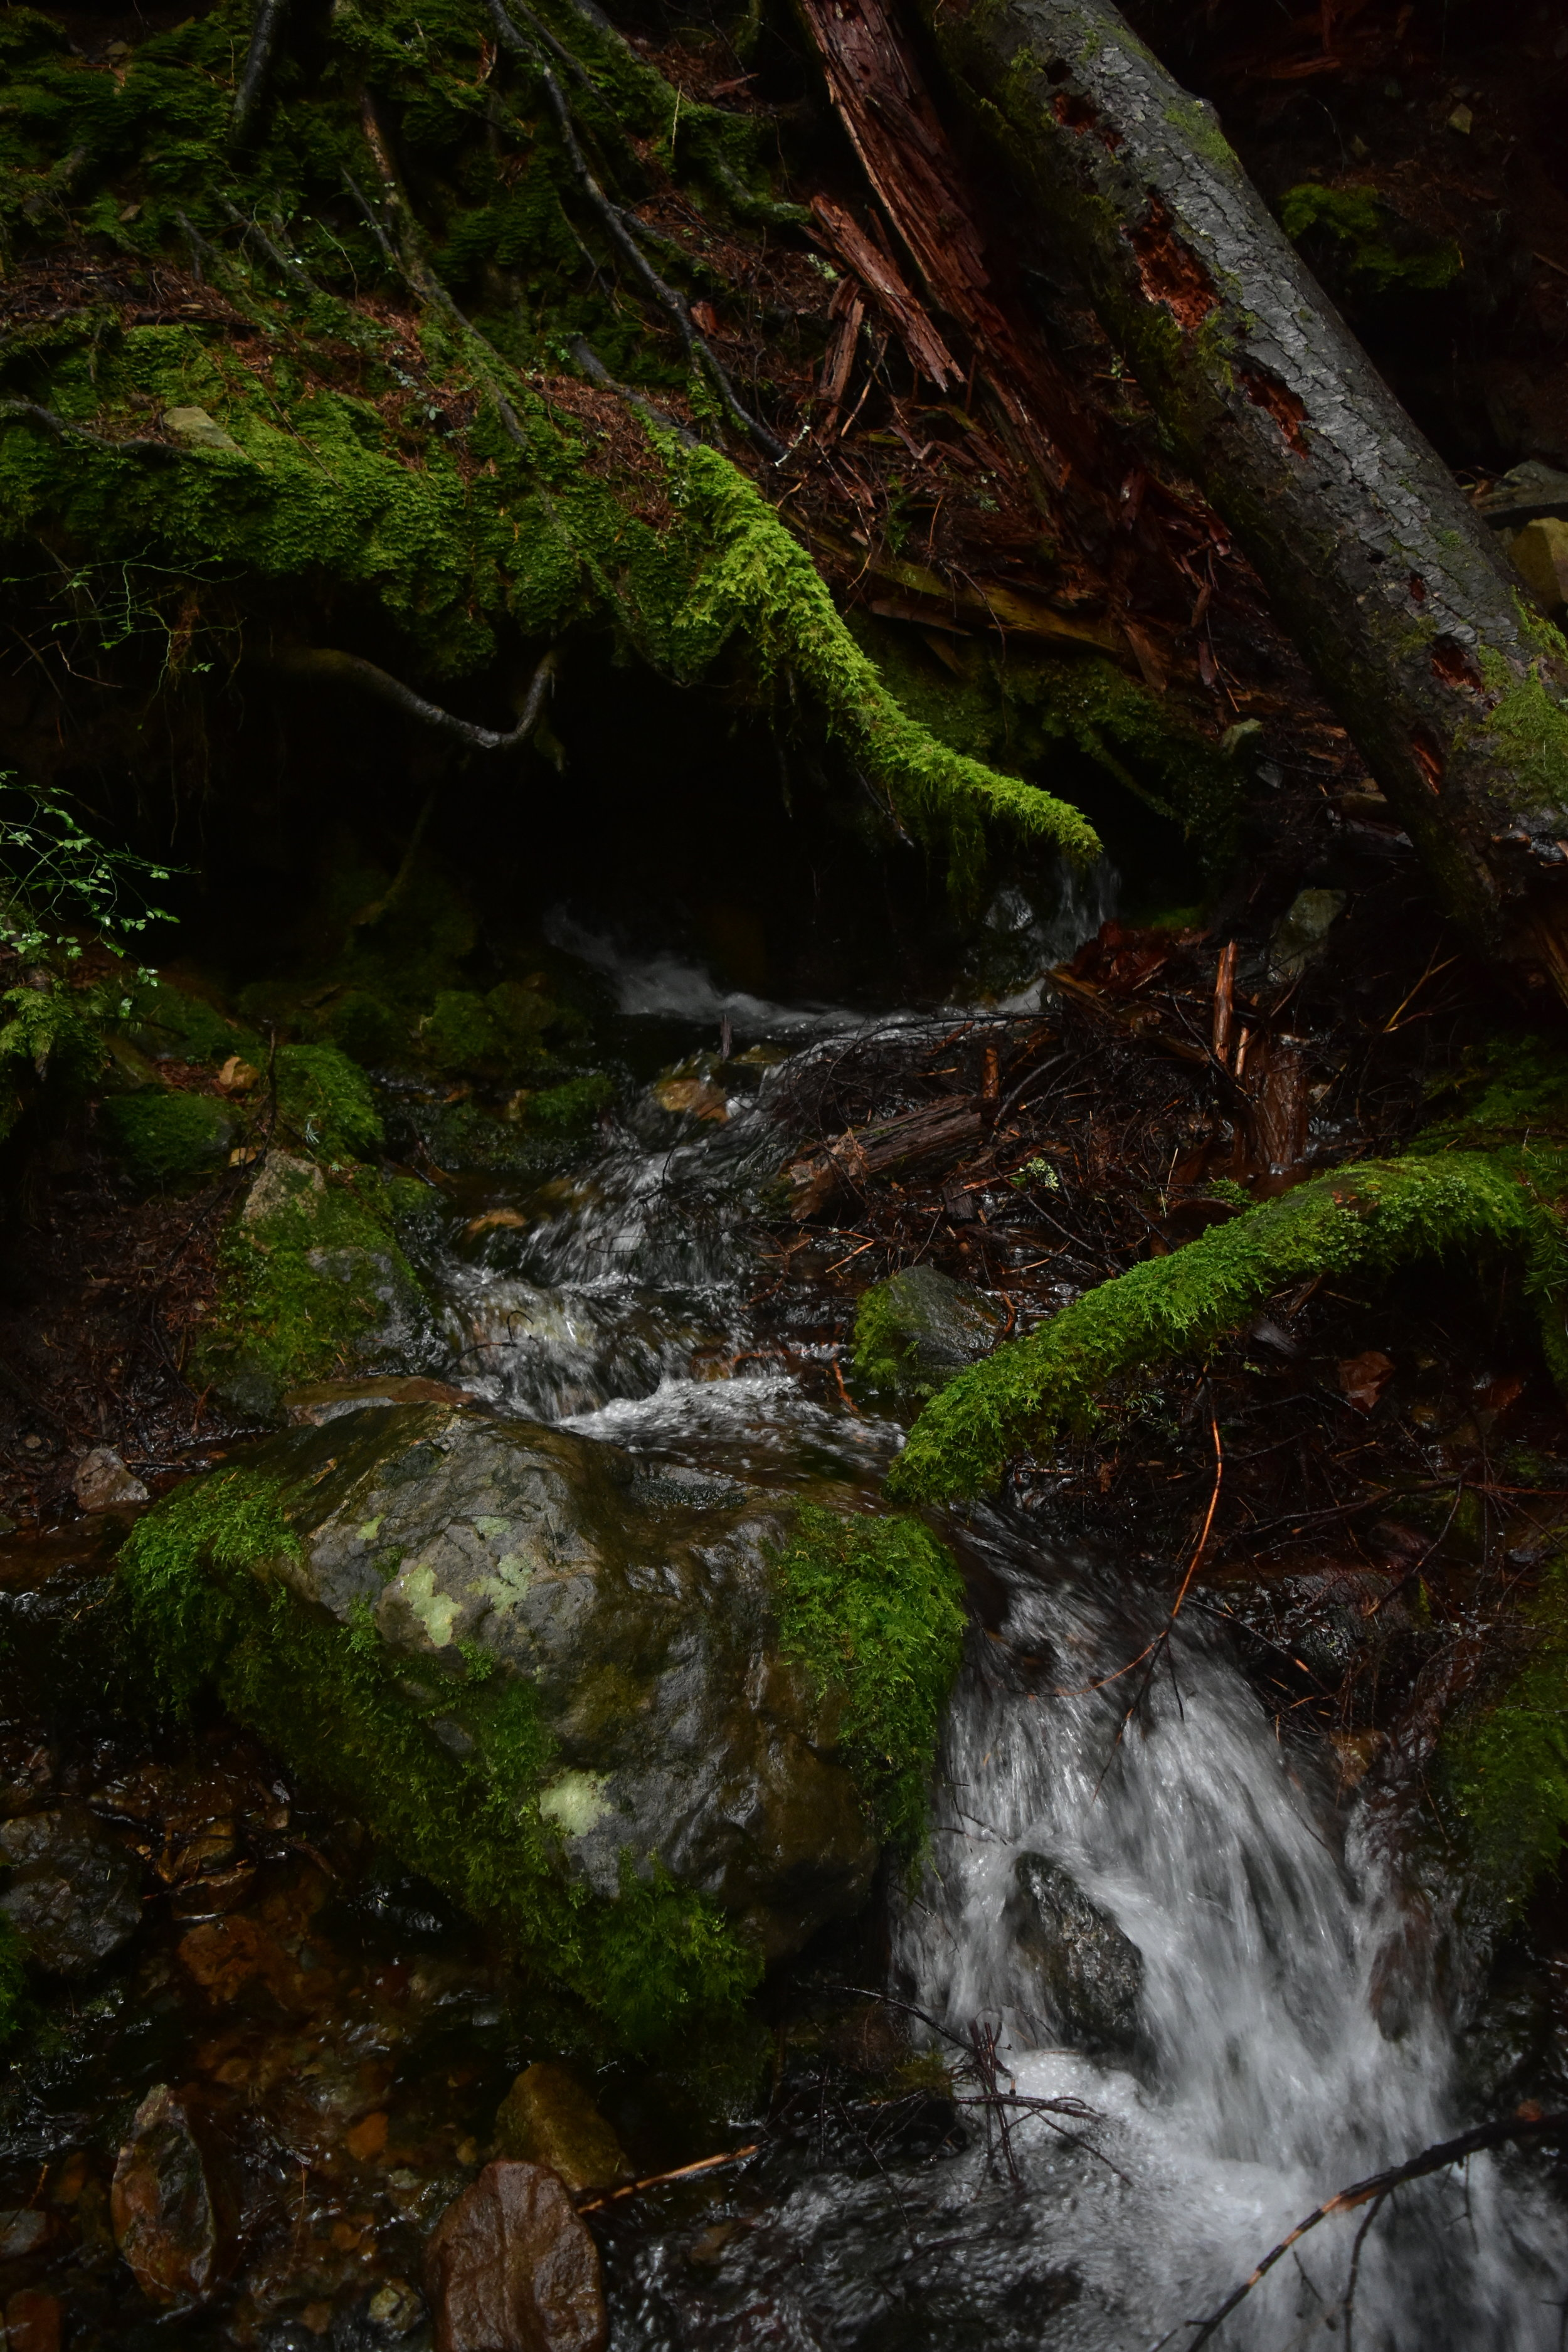 Water flows under the roots and the dirt